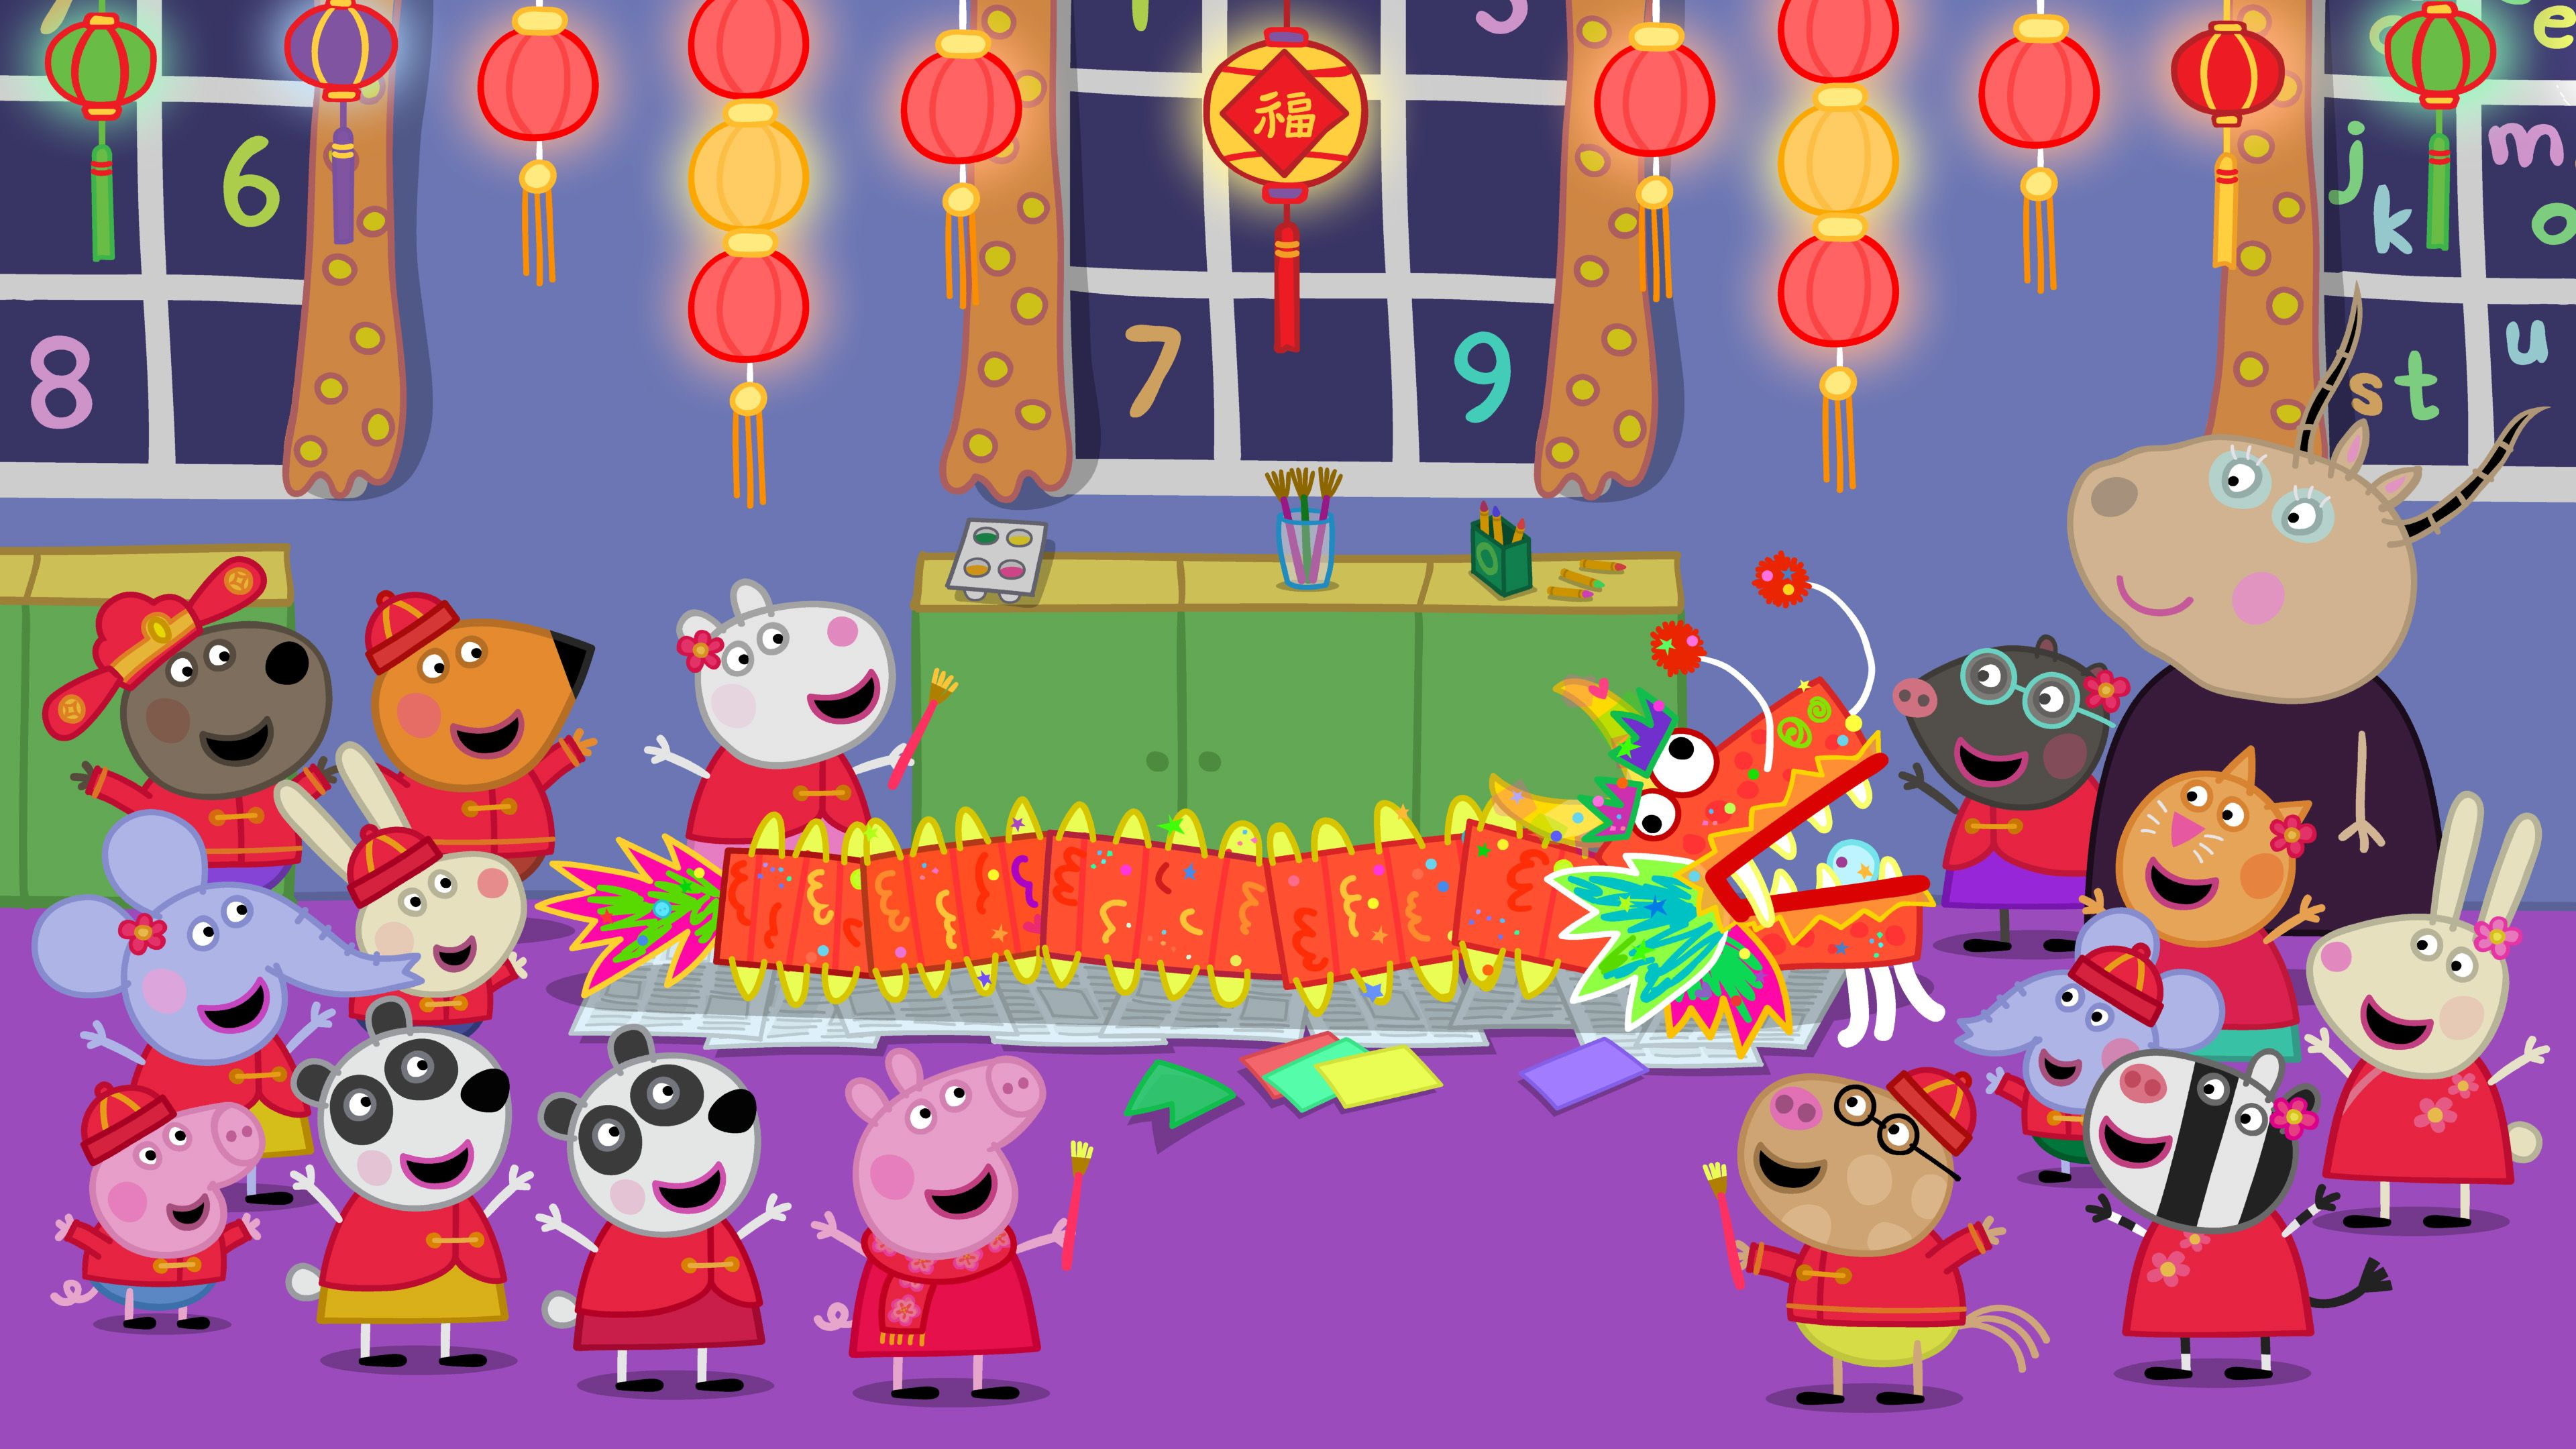 Here's a Sneak Peek of the Chinese New Year Episode of Peppa Pig